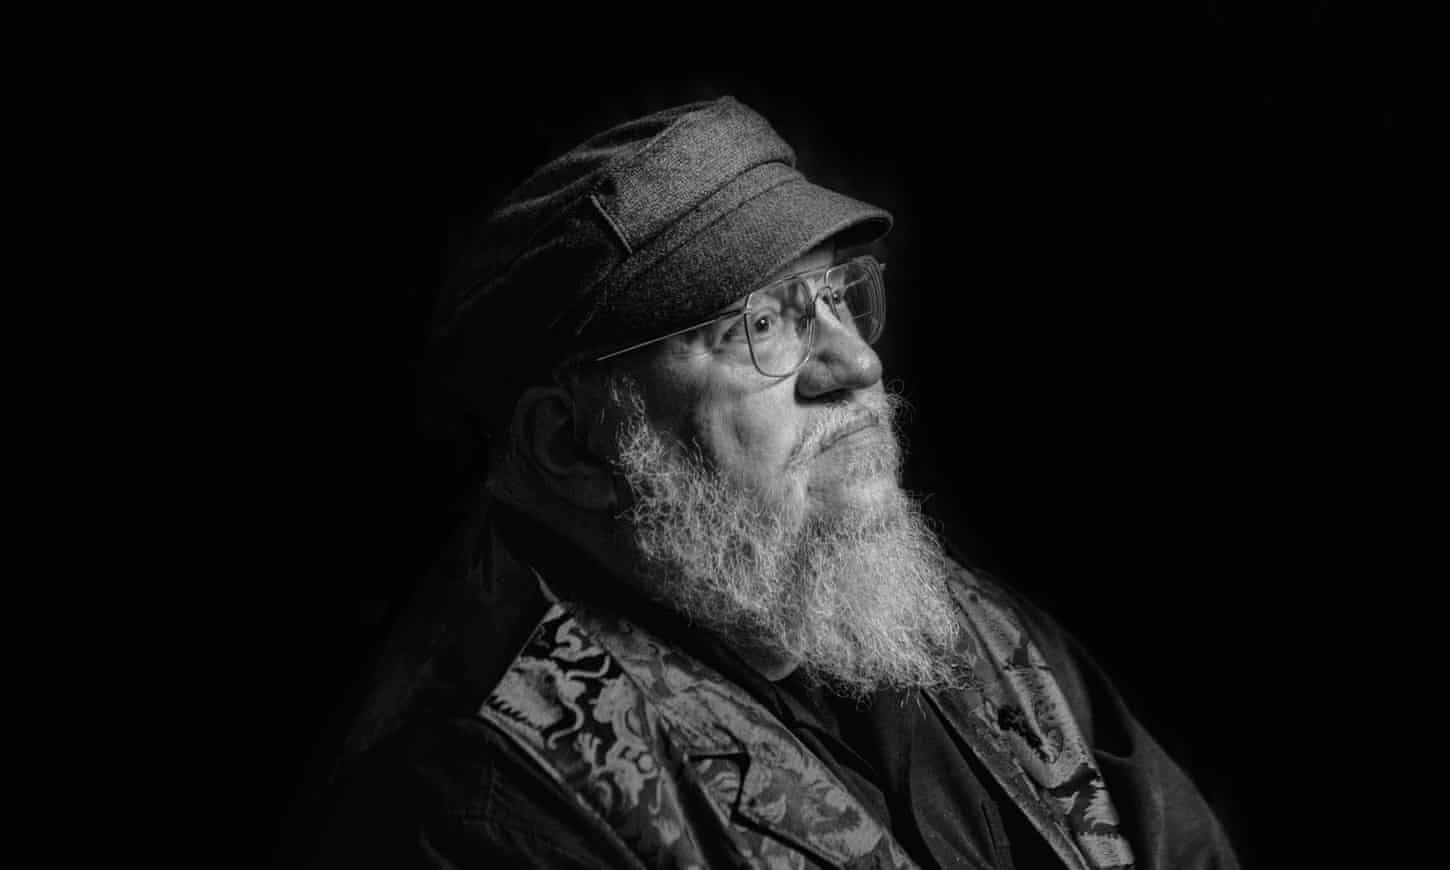 George RR Martin: 'Game of Thrones finishing is freeing, I'm at my own pace'